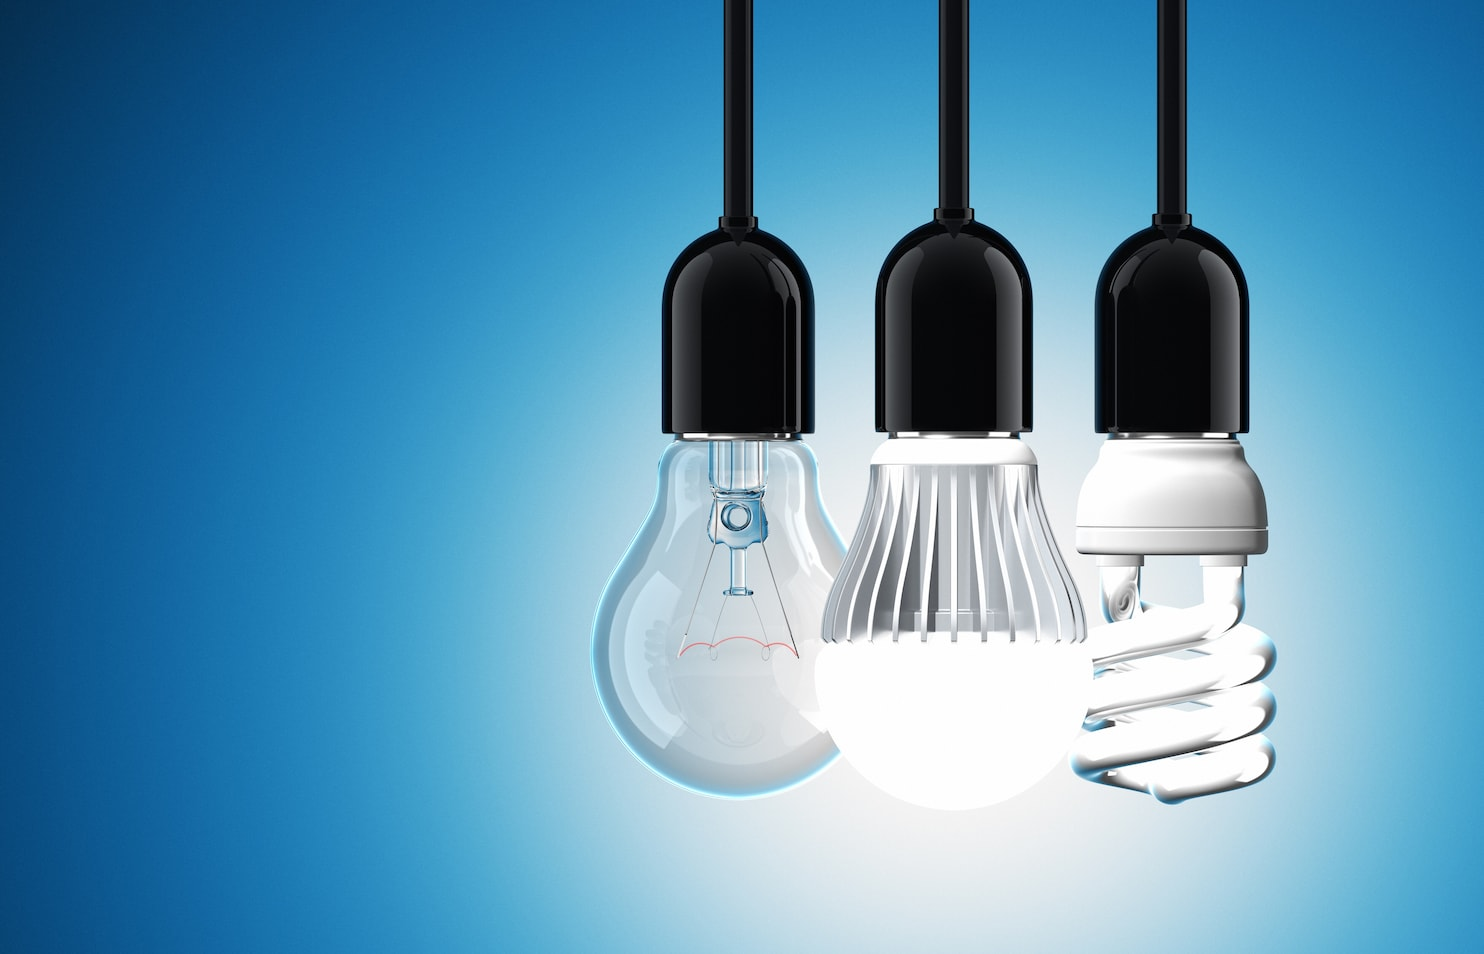 Incandescent Lamp Vs Fluorescent Lamp Why You Should Switch To Led Lightbulbs Right Now Before